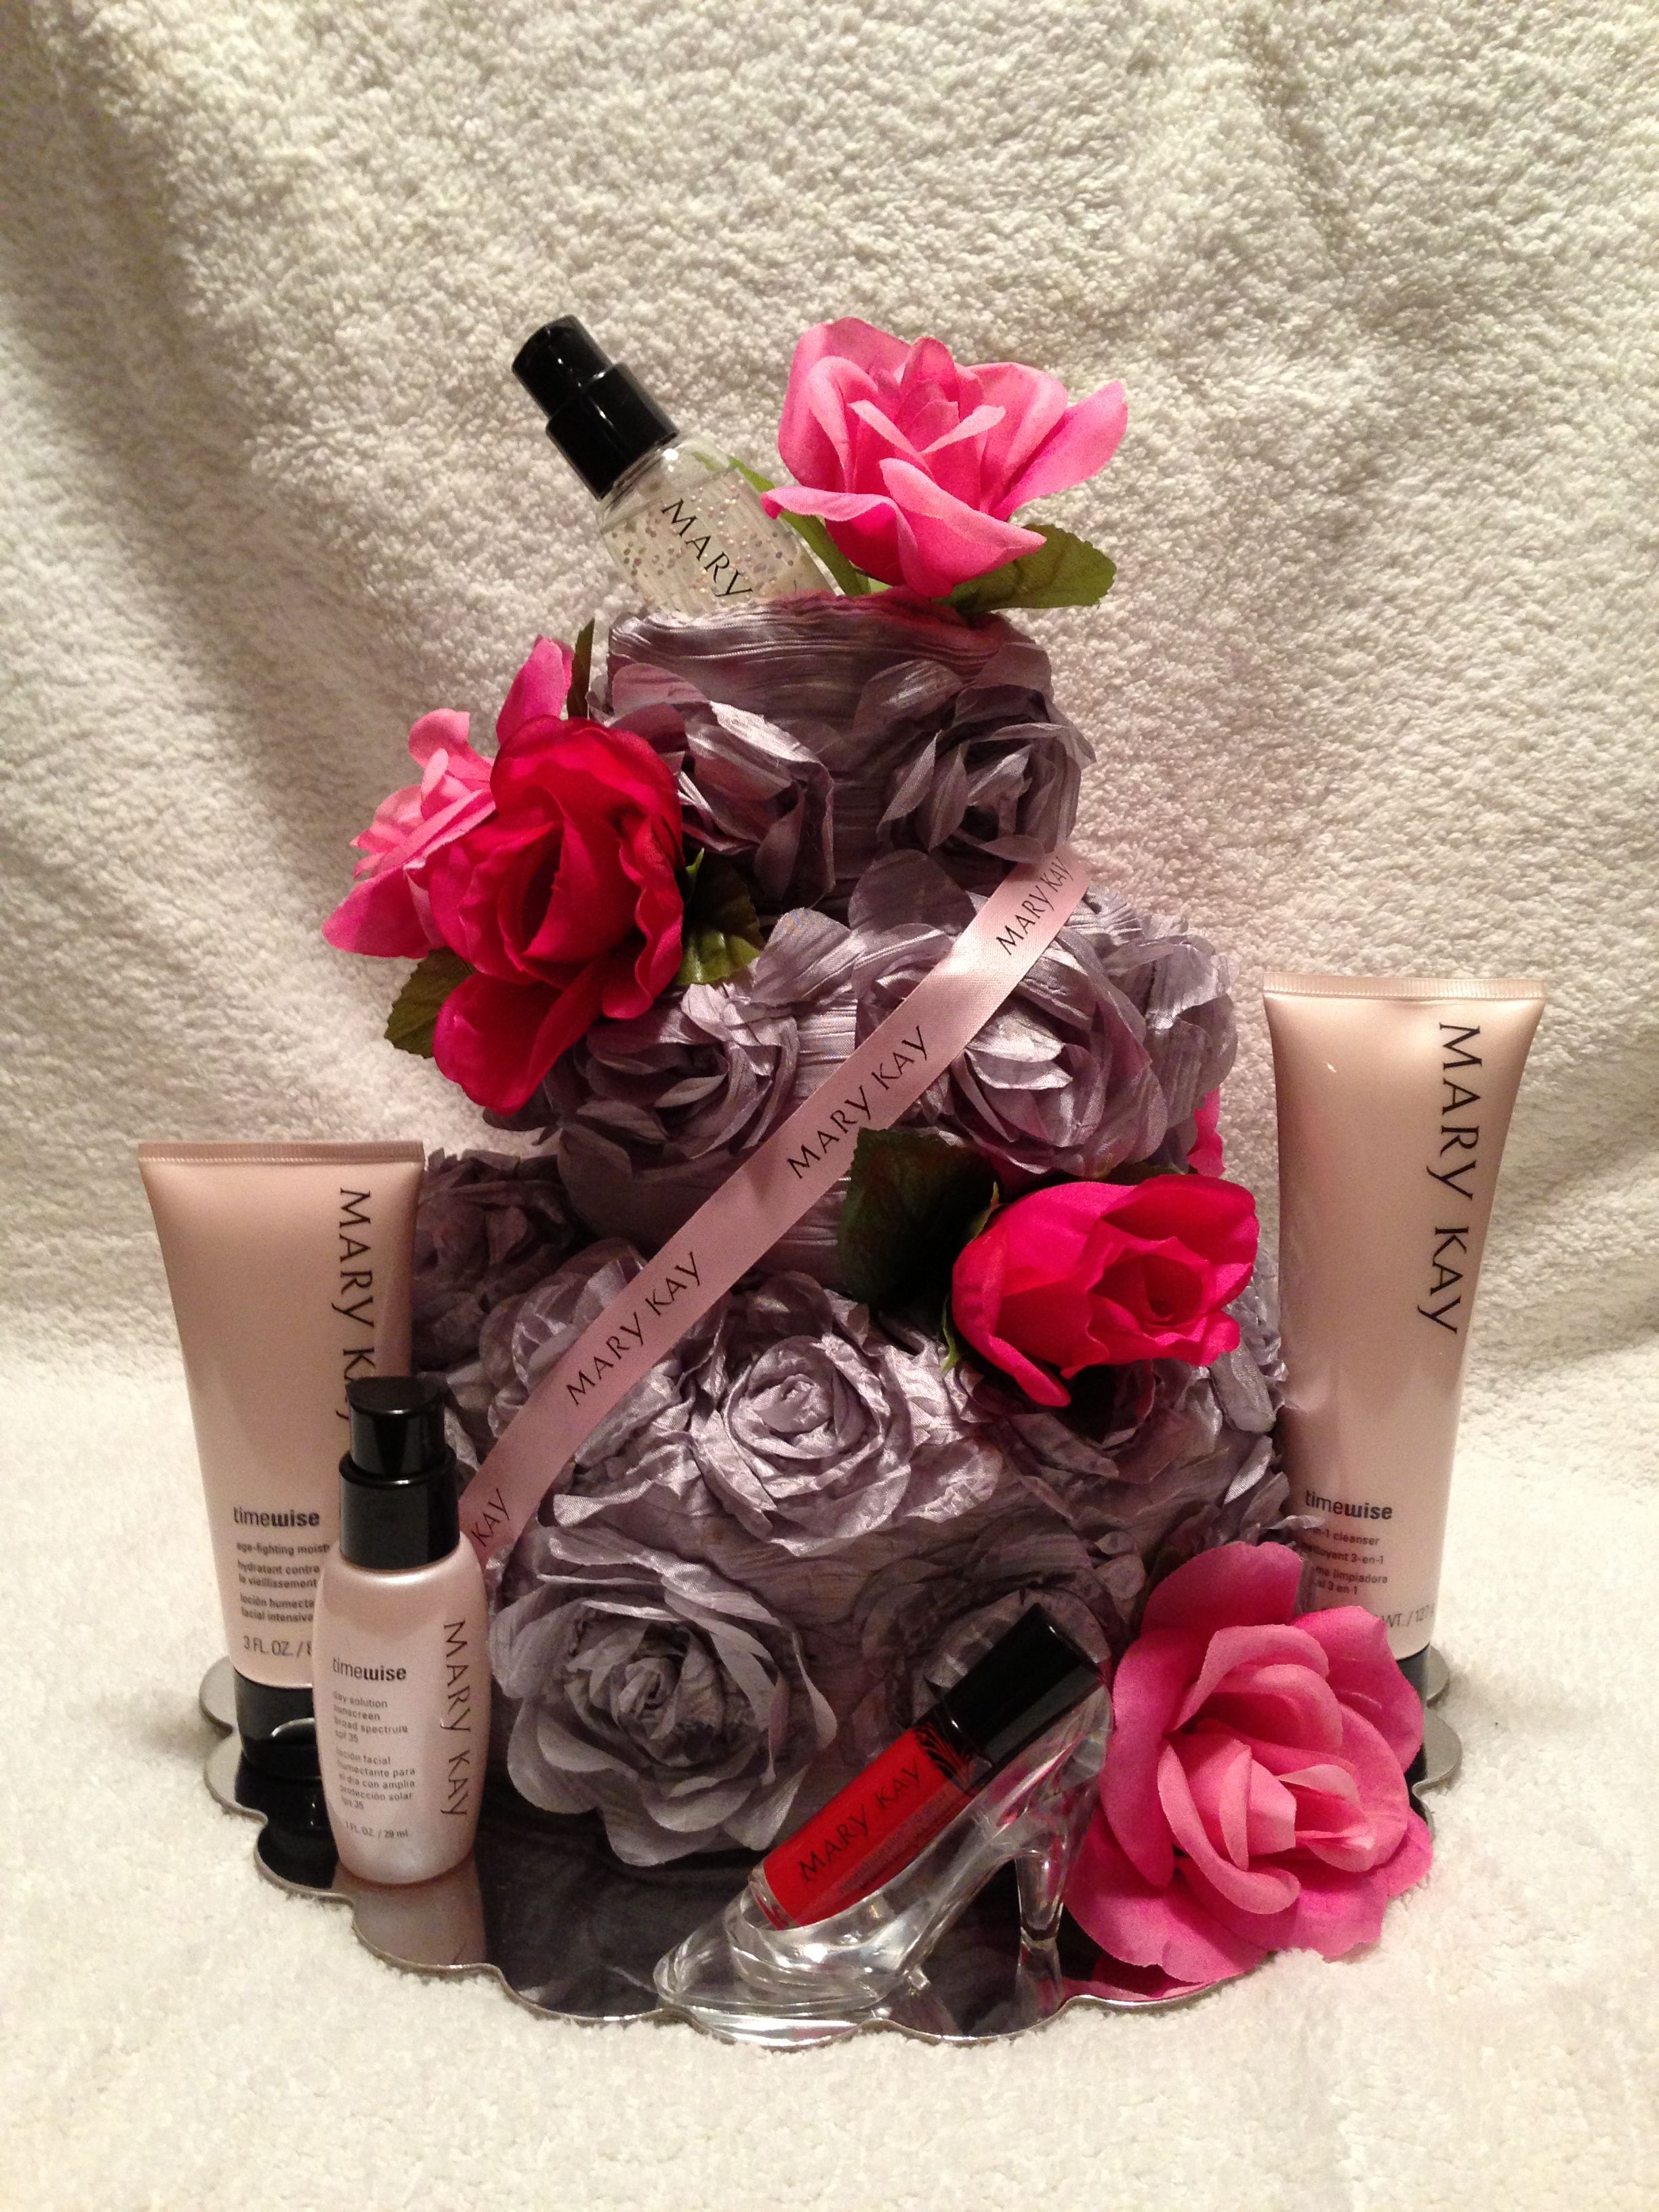 Mary Kay Official Site Mary kay gifts, Mary kay